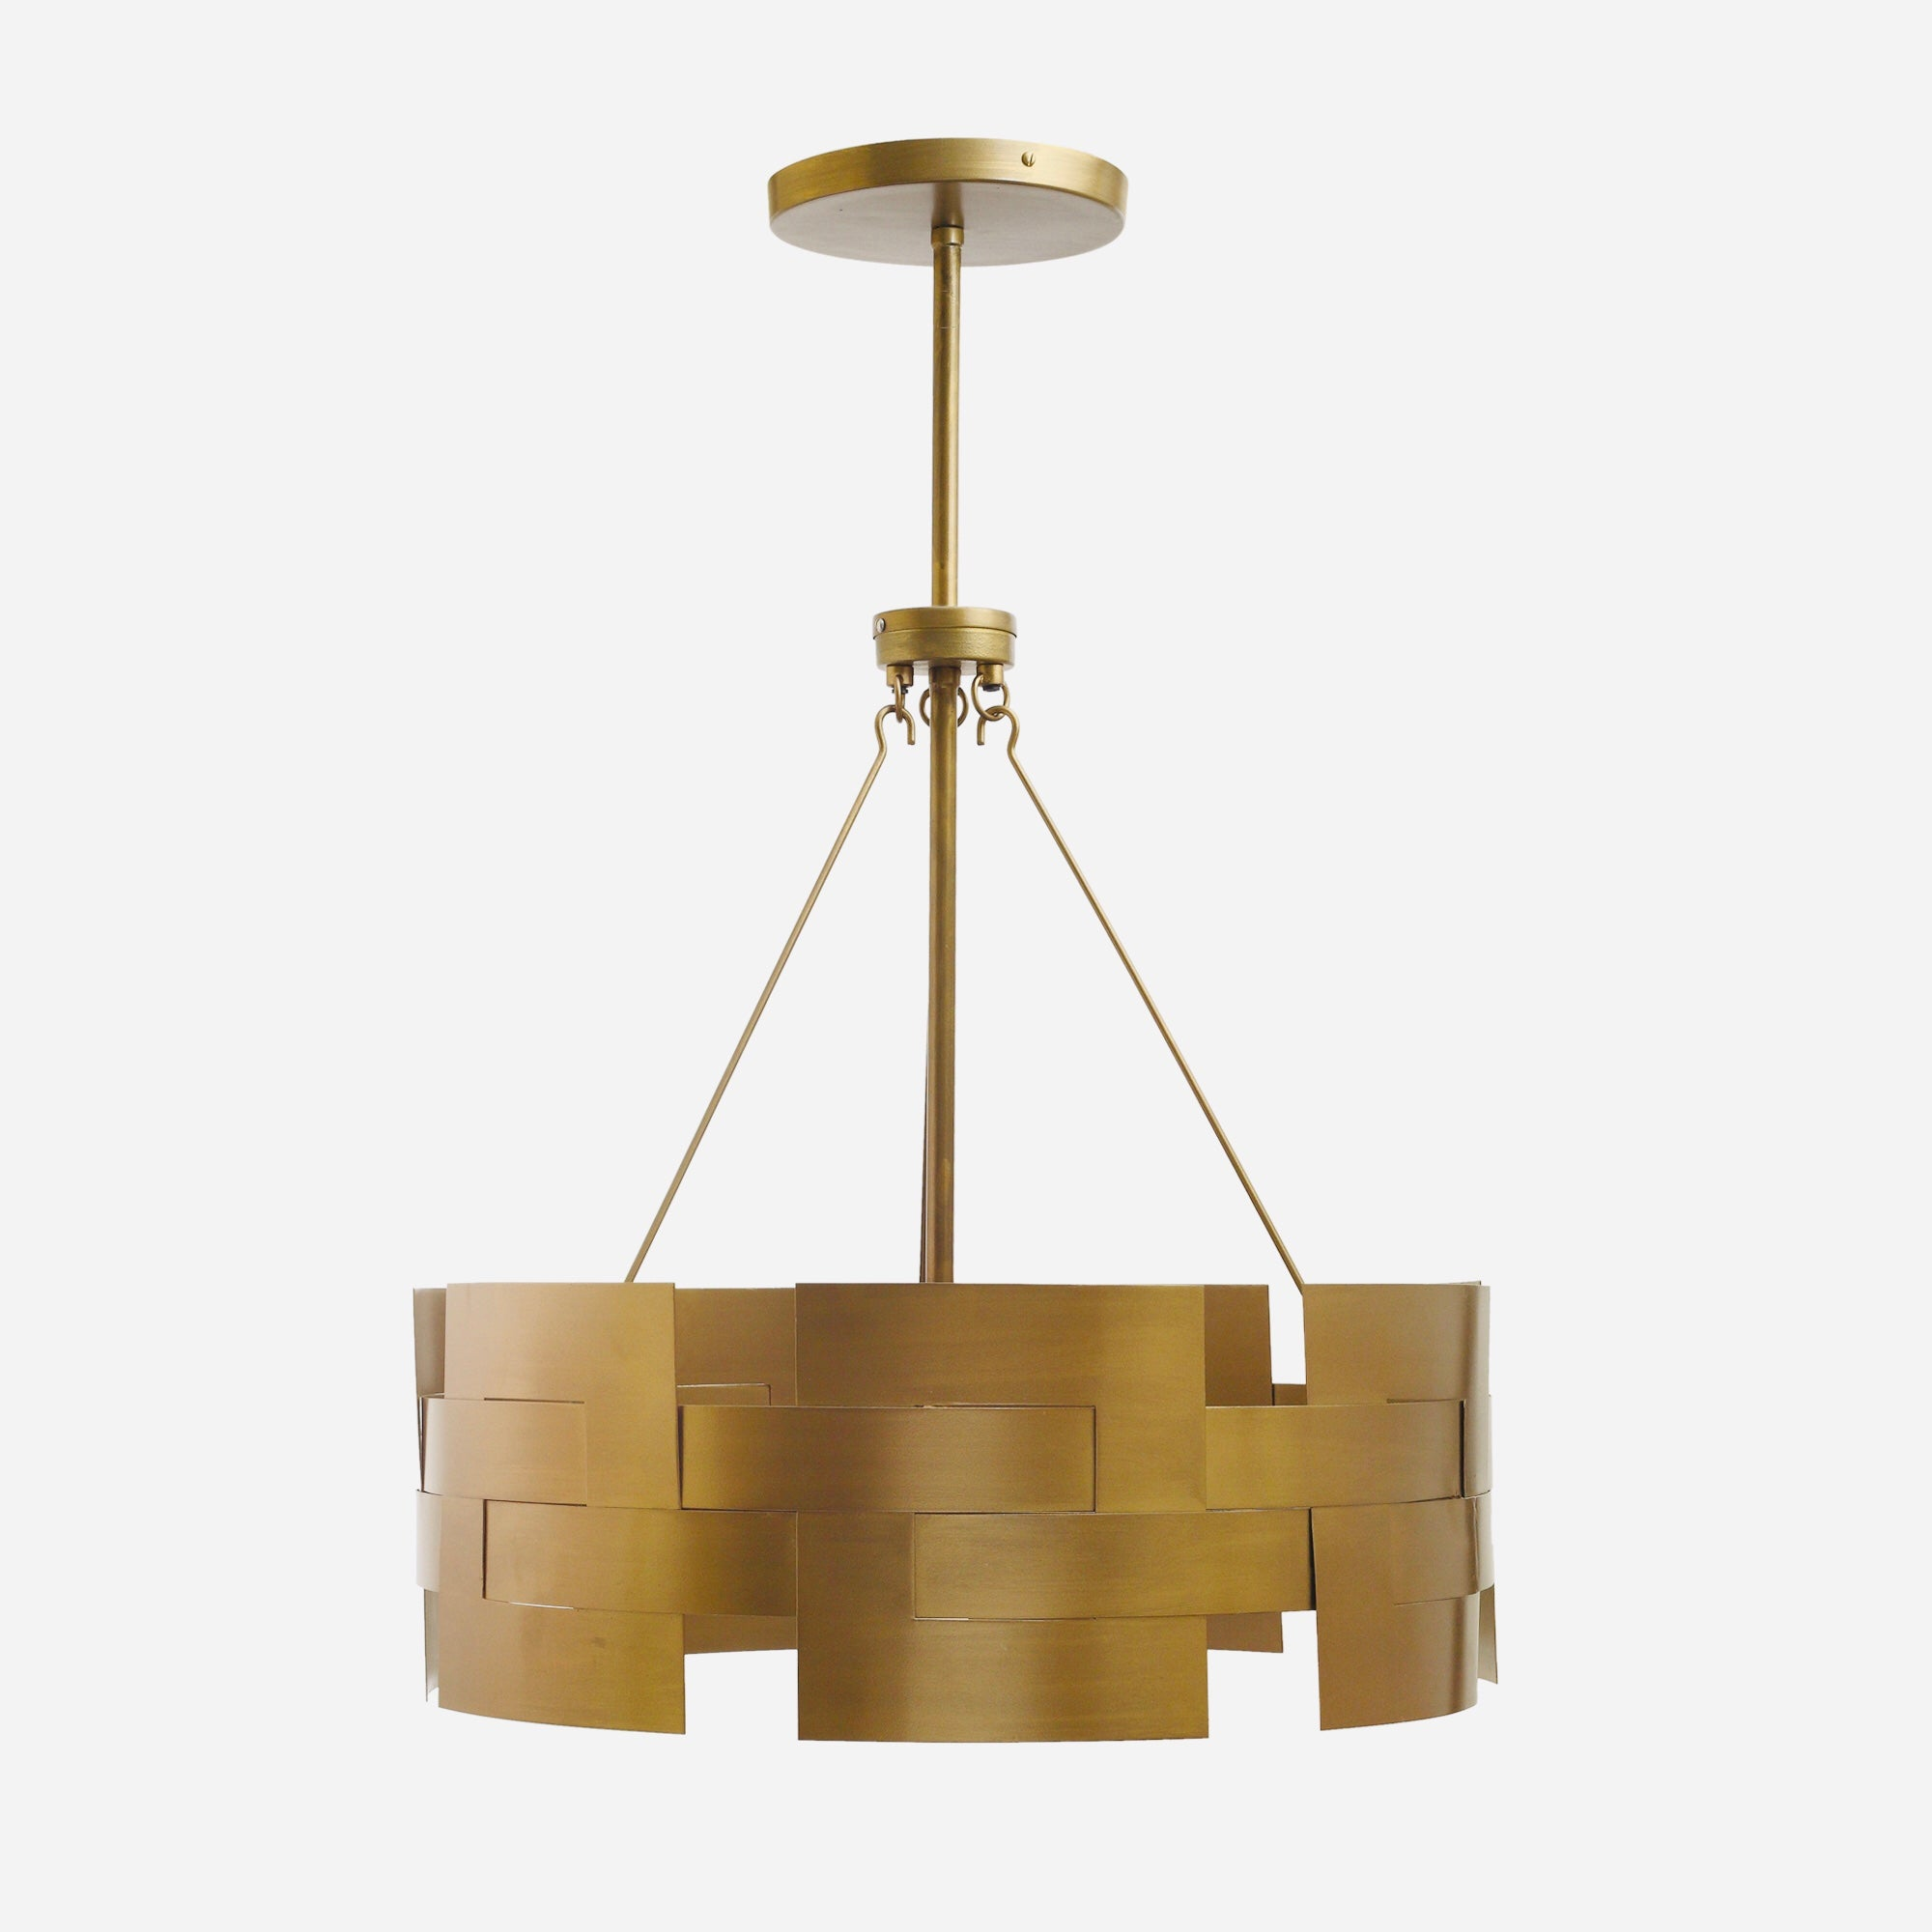 Dunand Handcrafted Antique Brass Pendant Light